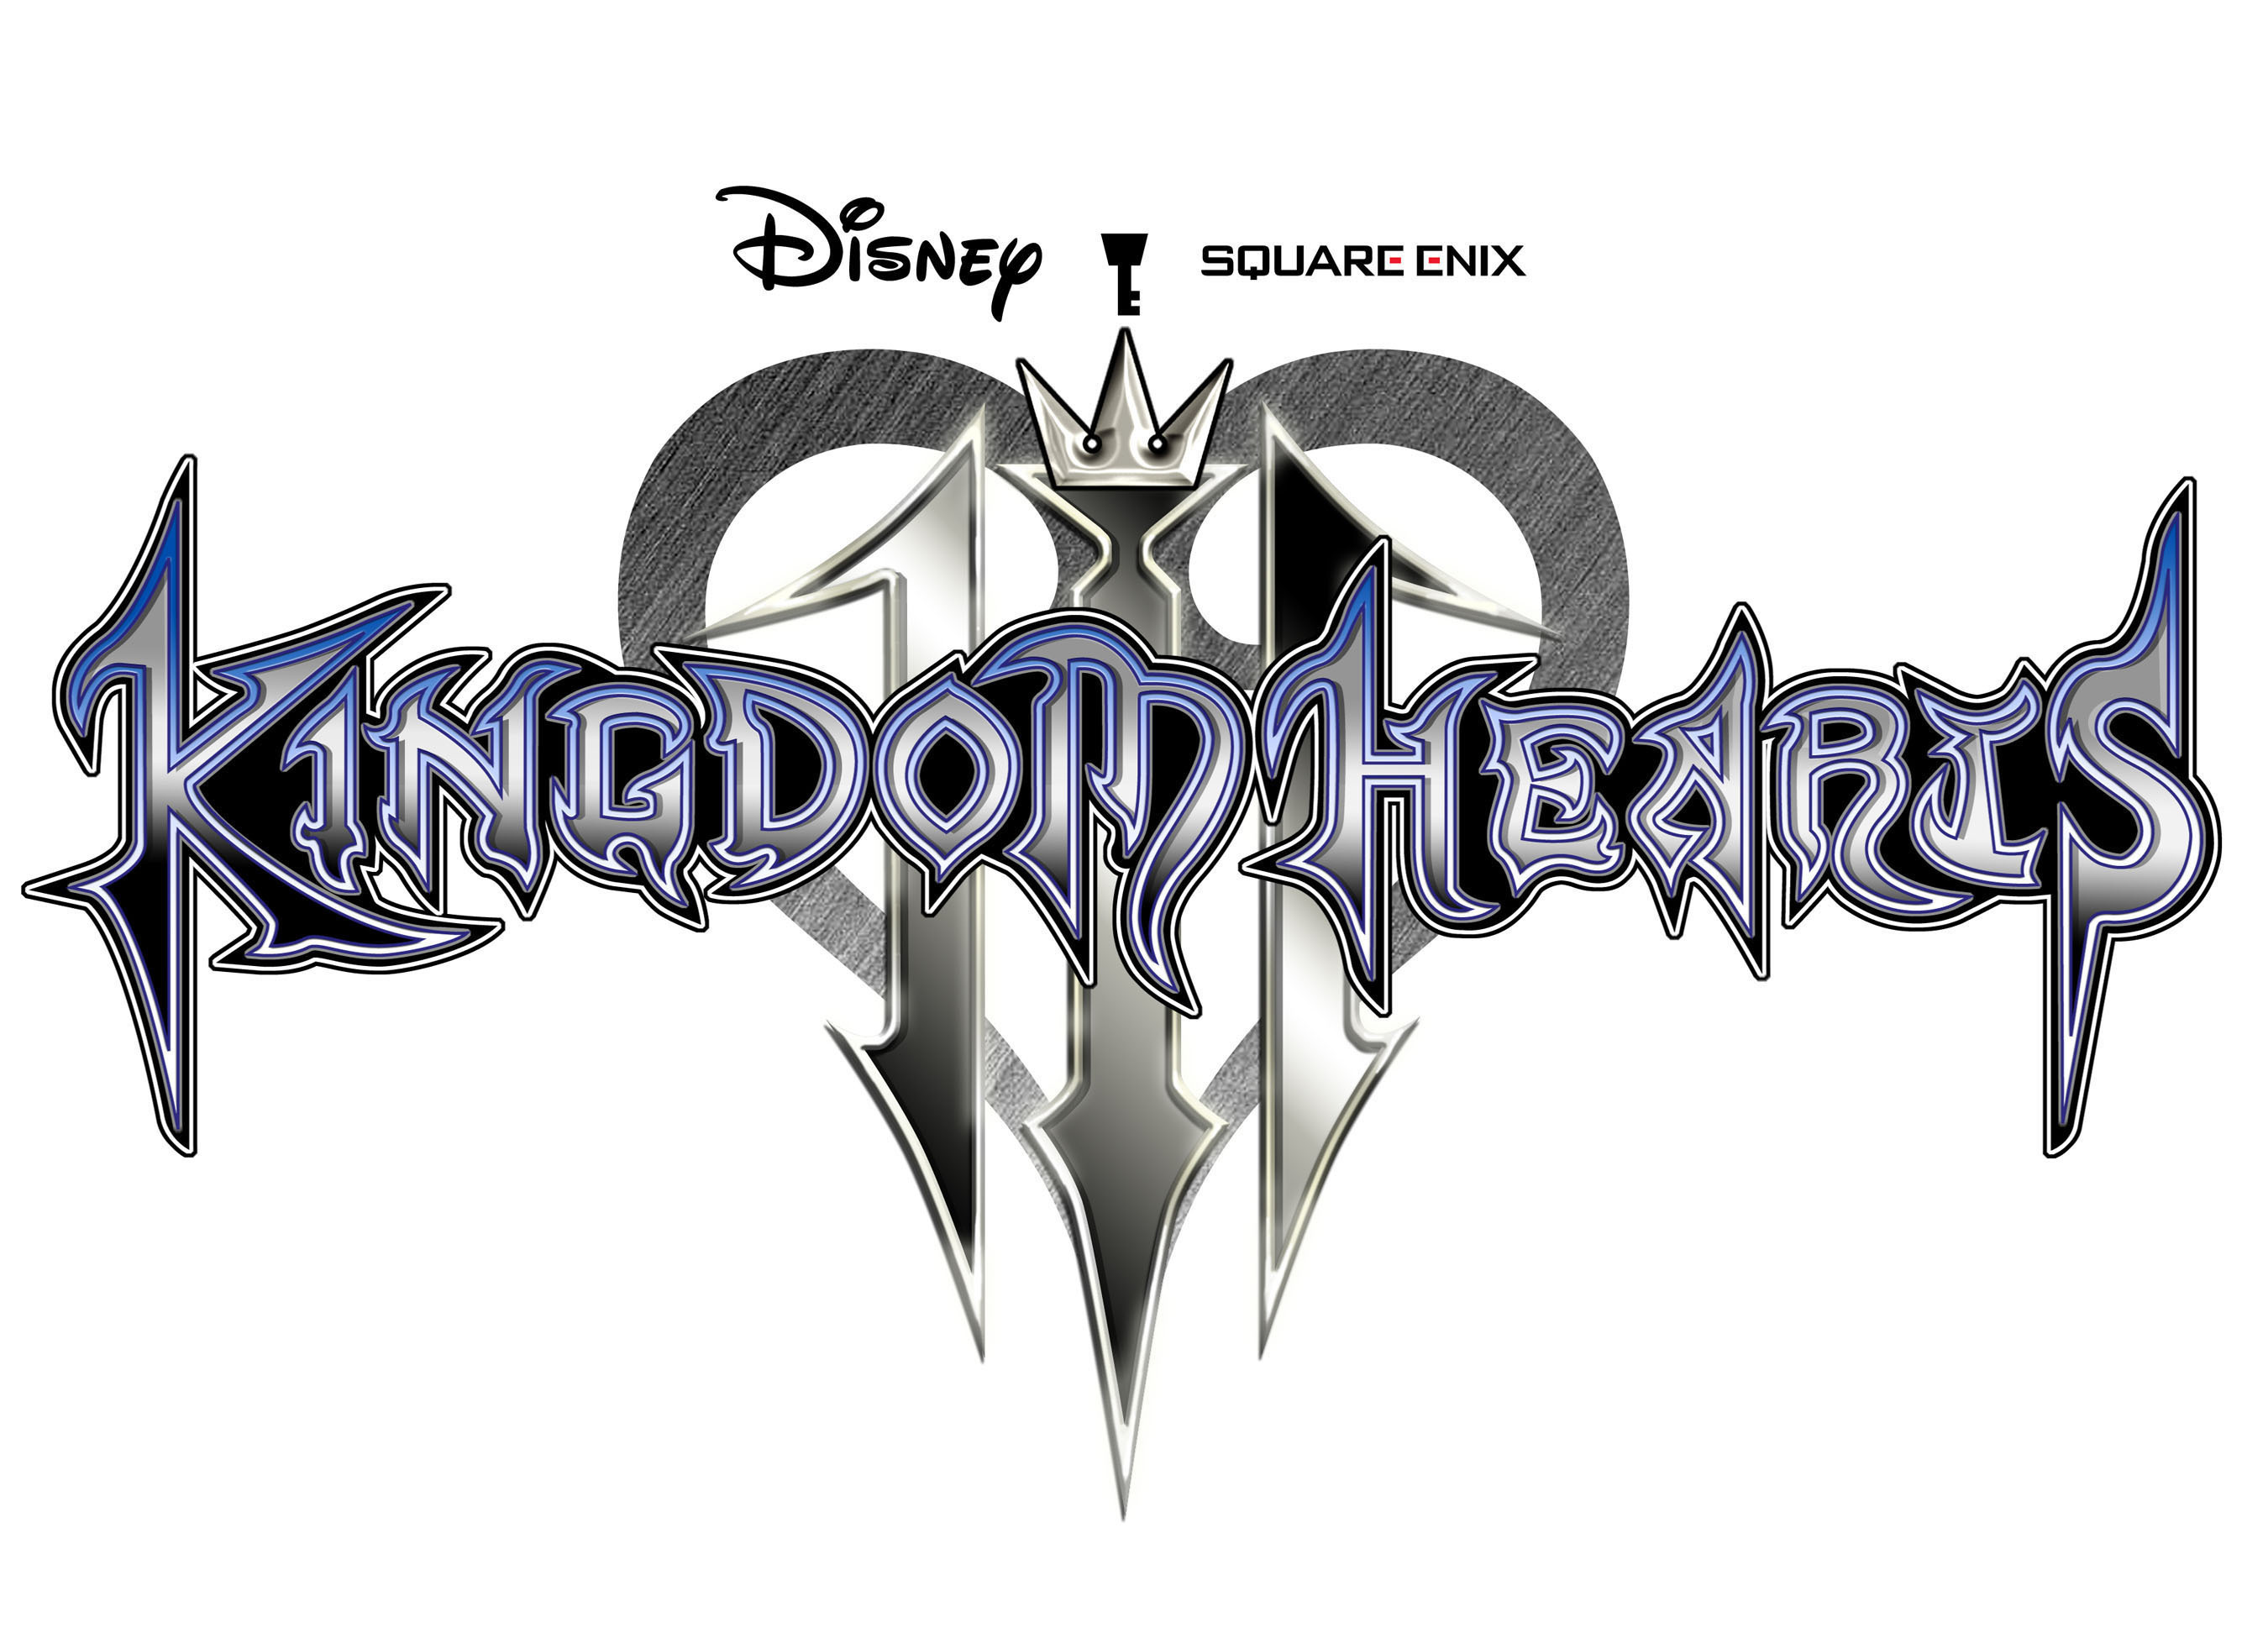 SQUARE ENIX, INC. KINGDOM HEARTS